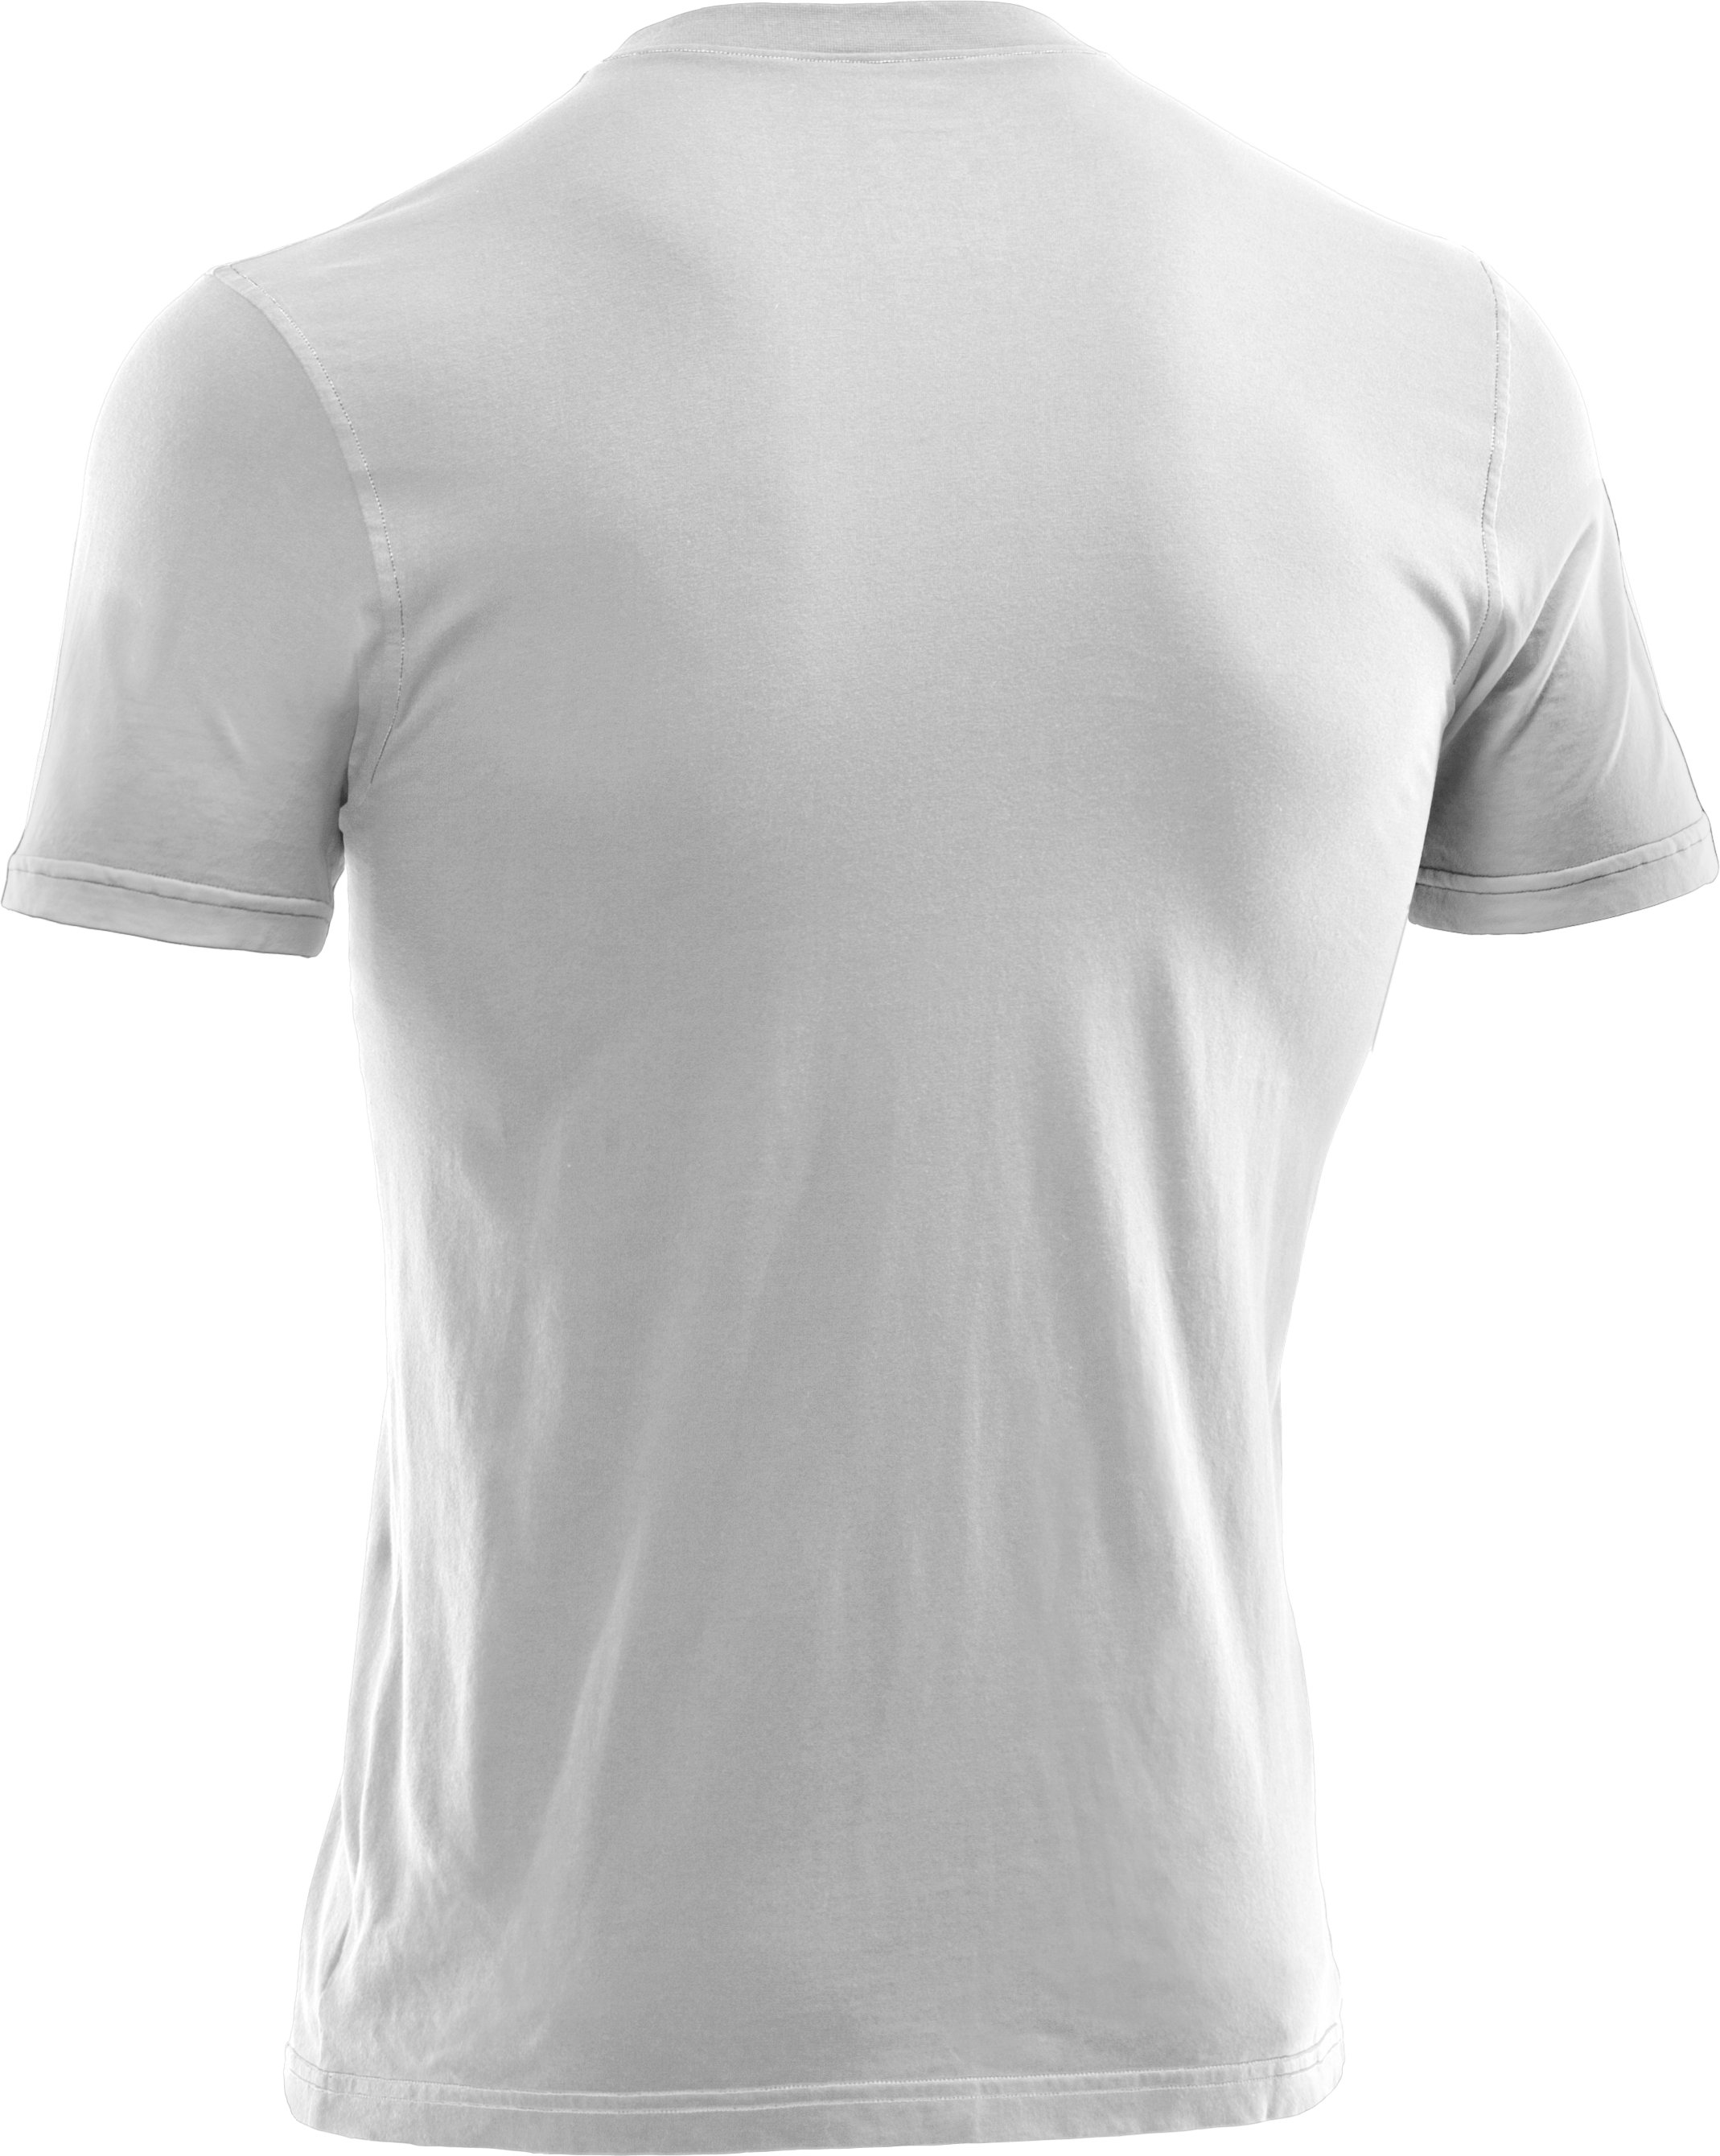 Men's Charged Cotton® Pocket T-Shirt, White